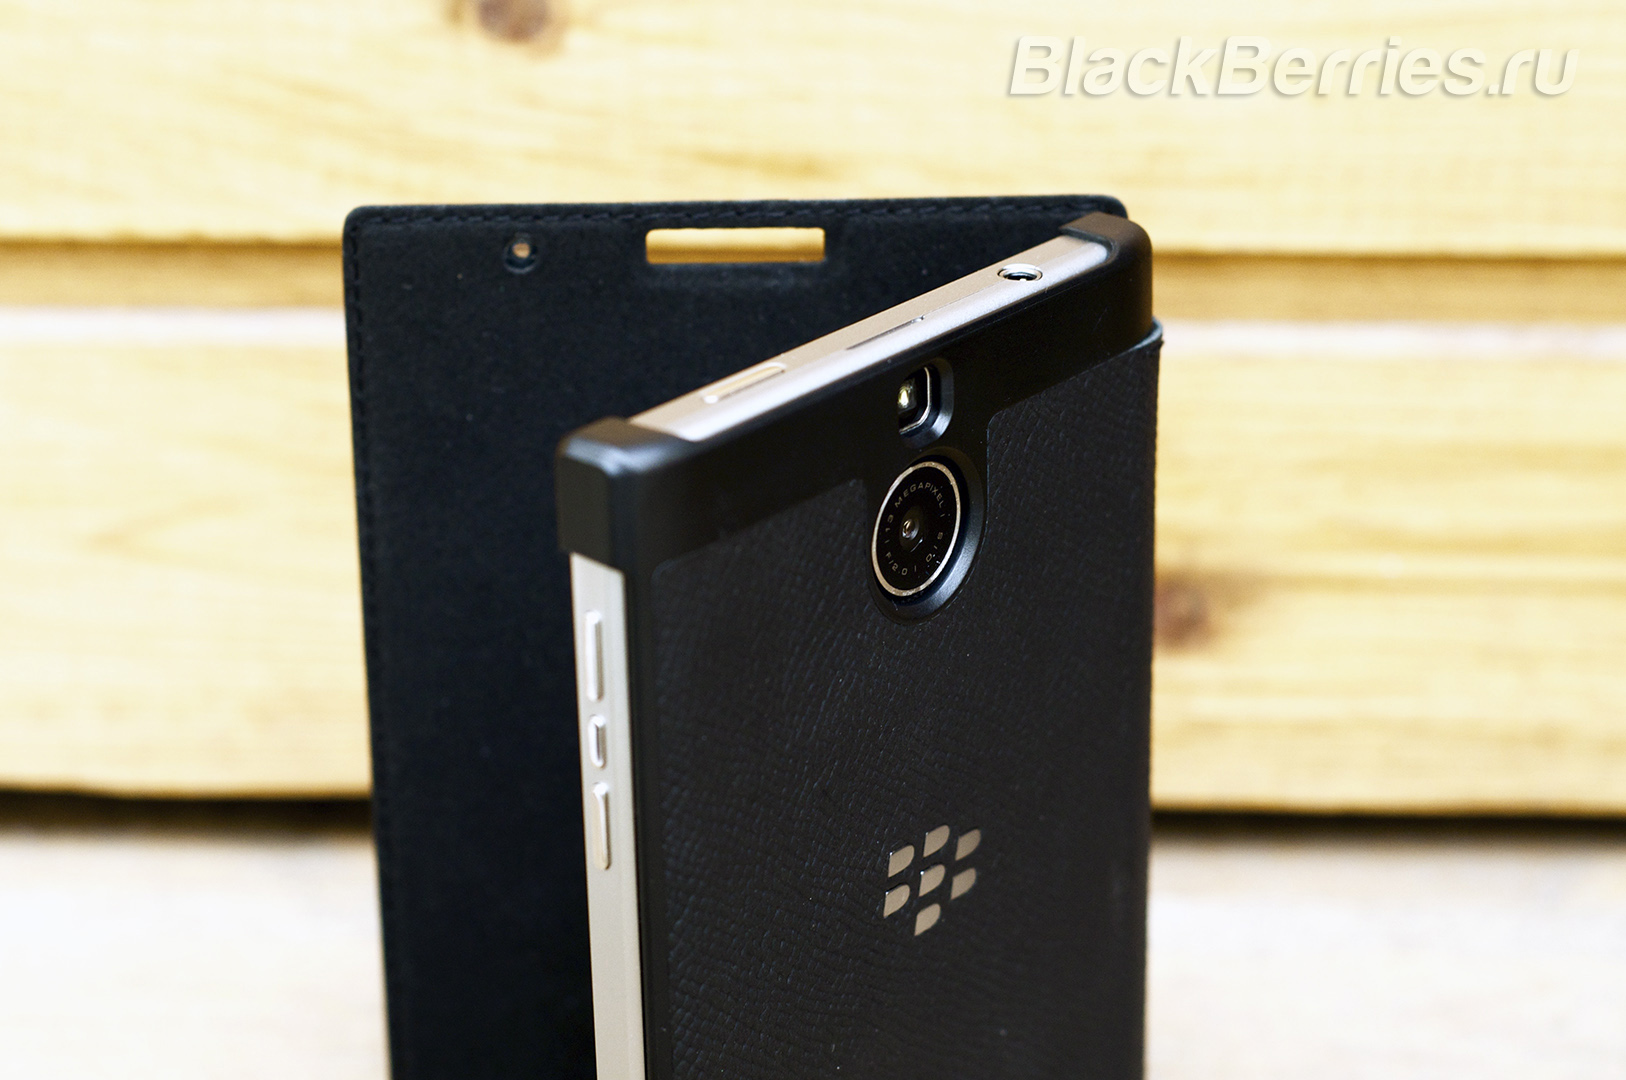 BlackBerry-Passport-Silver-Edition-Cases-20